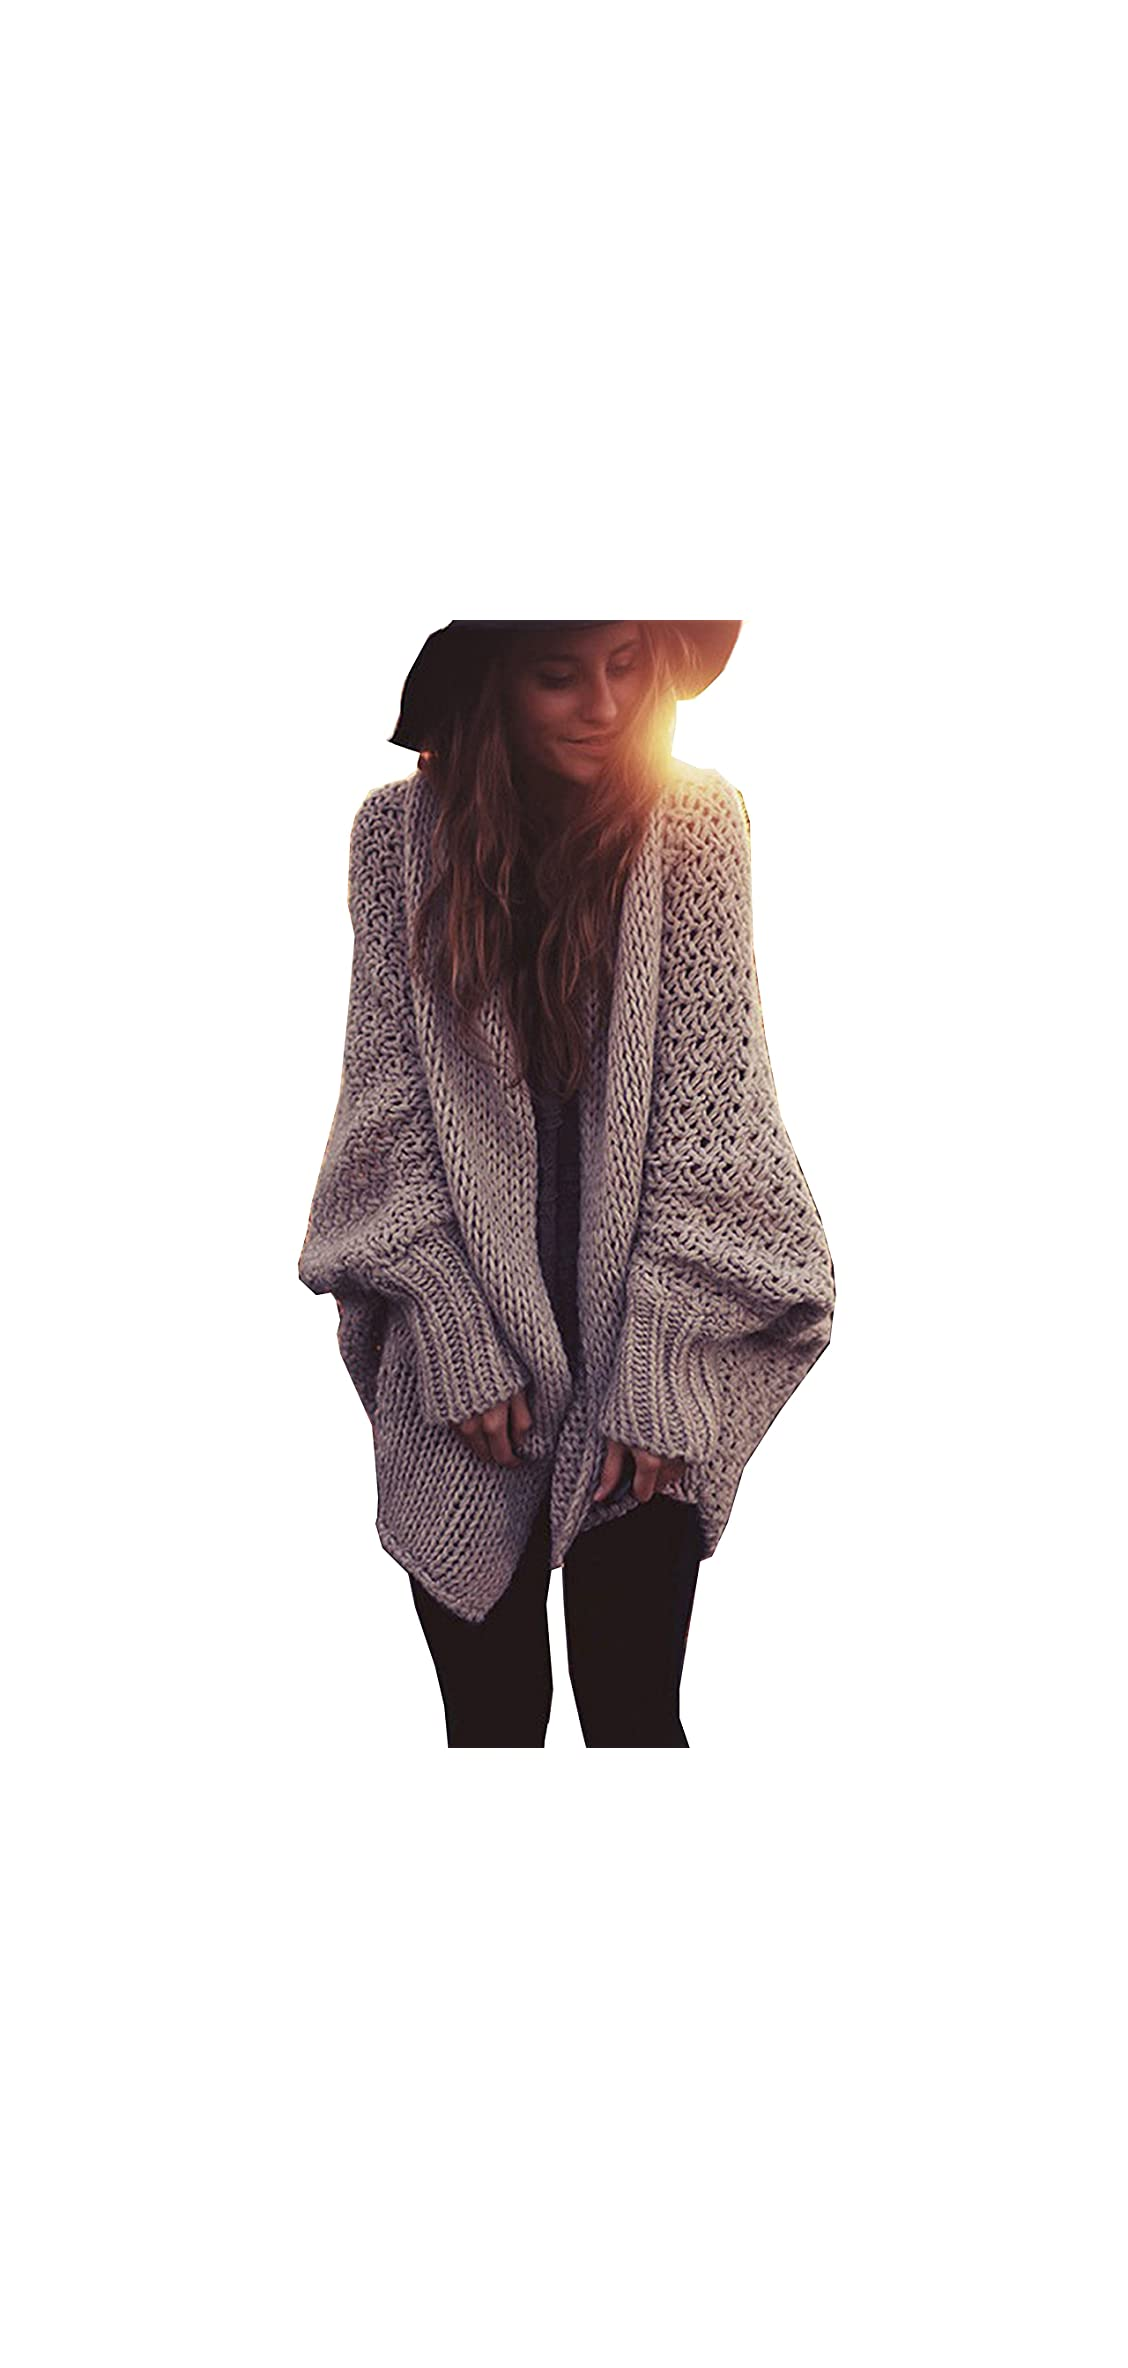 Mcupper-women Oversized Loose Knitted Sweater Batwing Sleeve